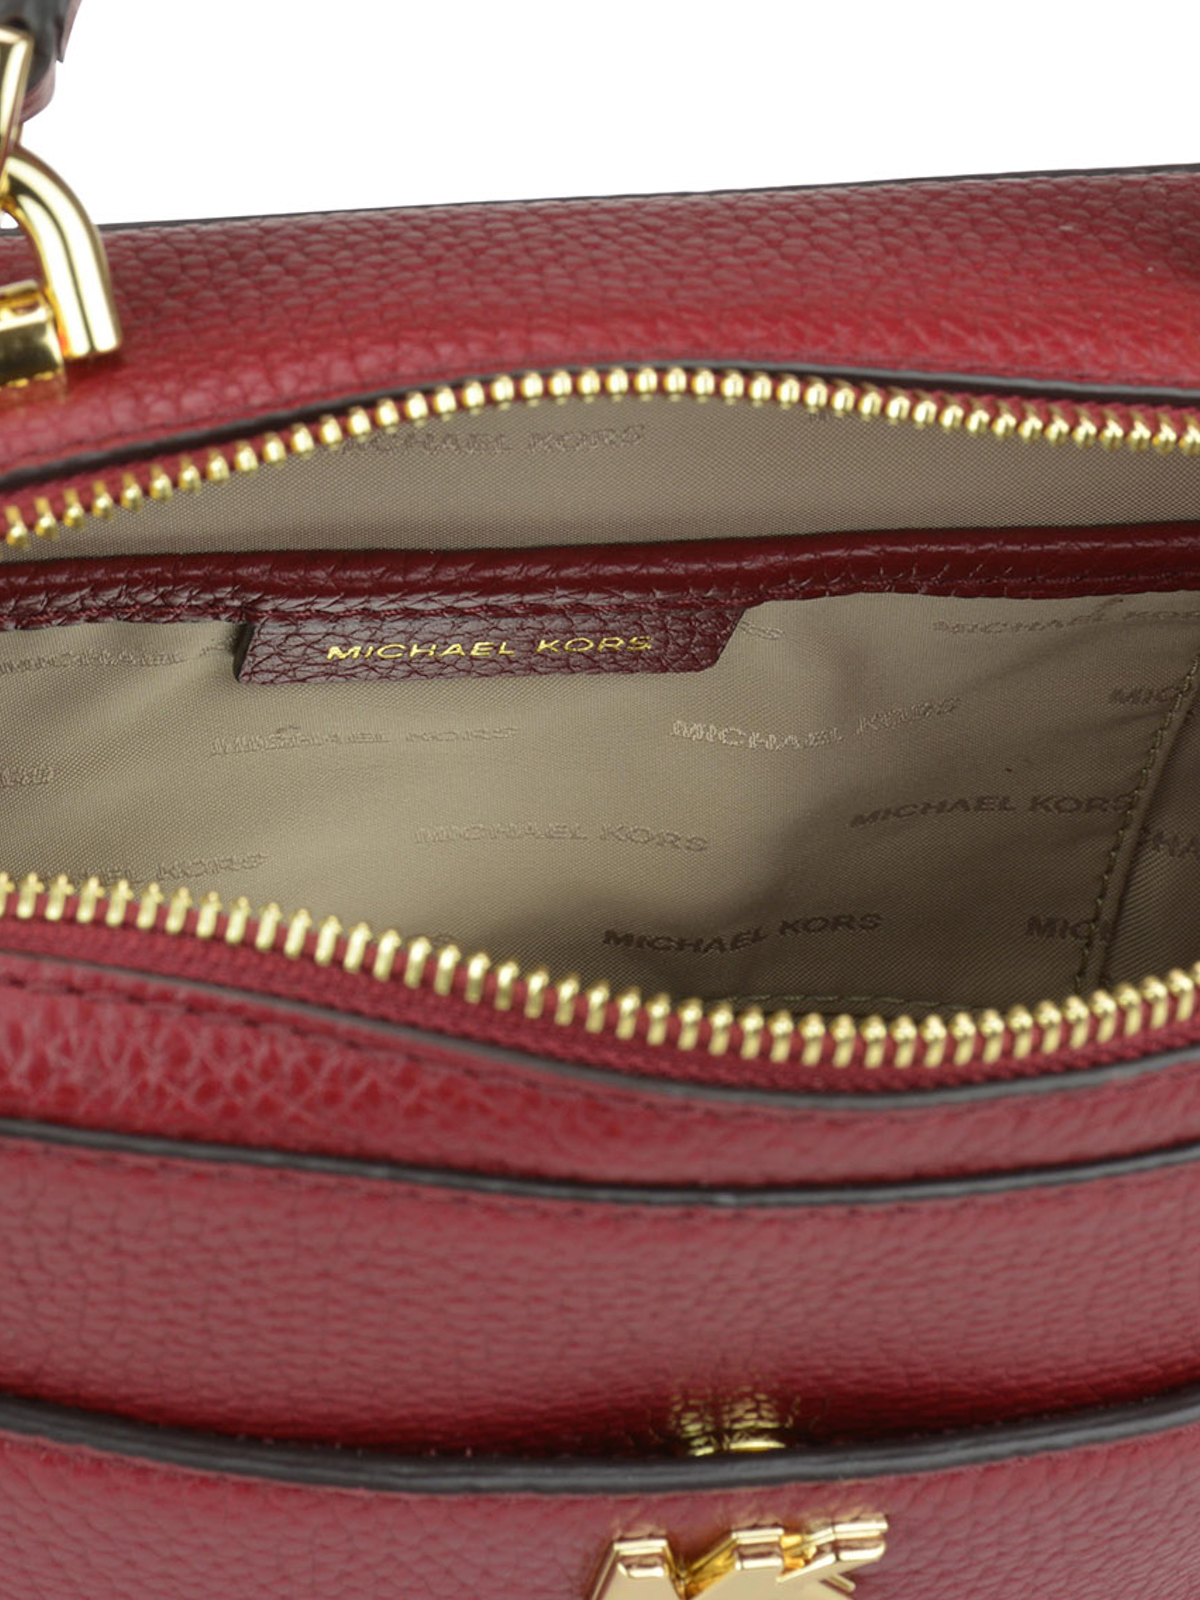 6d6c9c837bf5 MICHAEL KORS buy online Grained leather briefcase style bag. MICHAEL KORS  cross  body bags ...